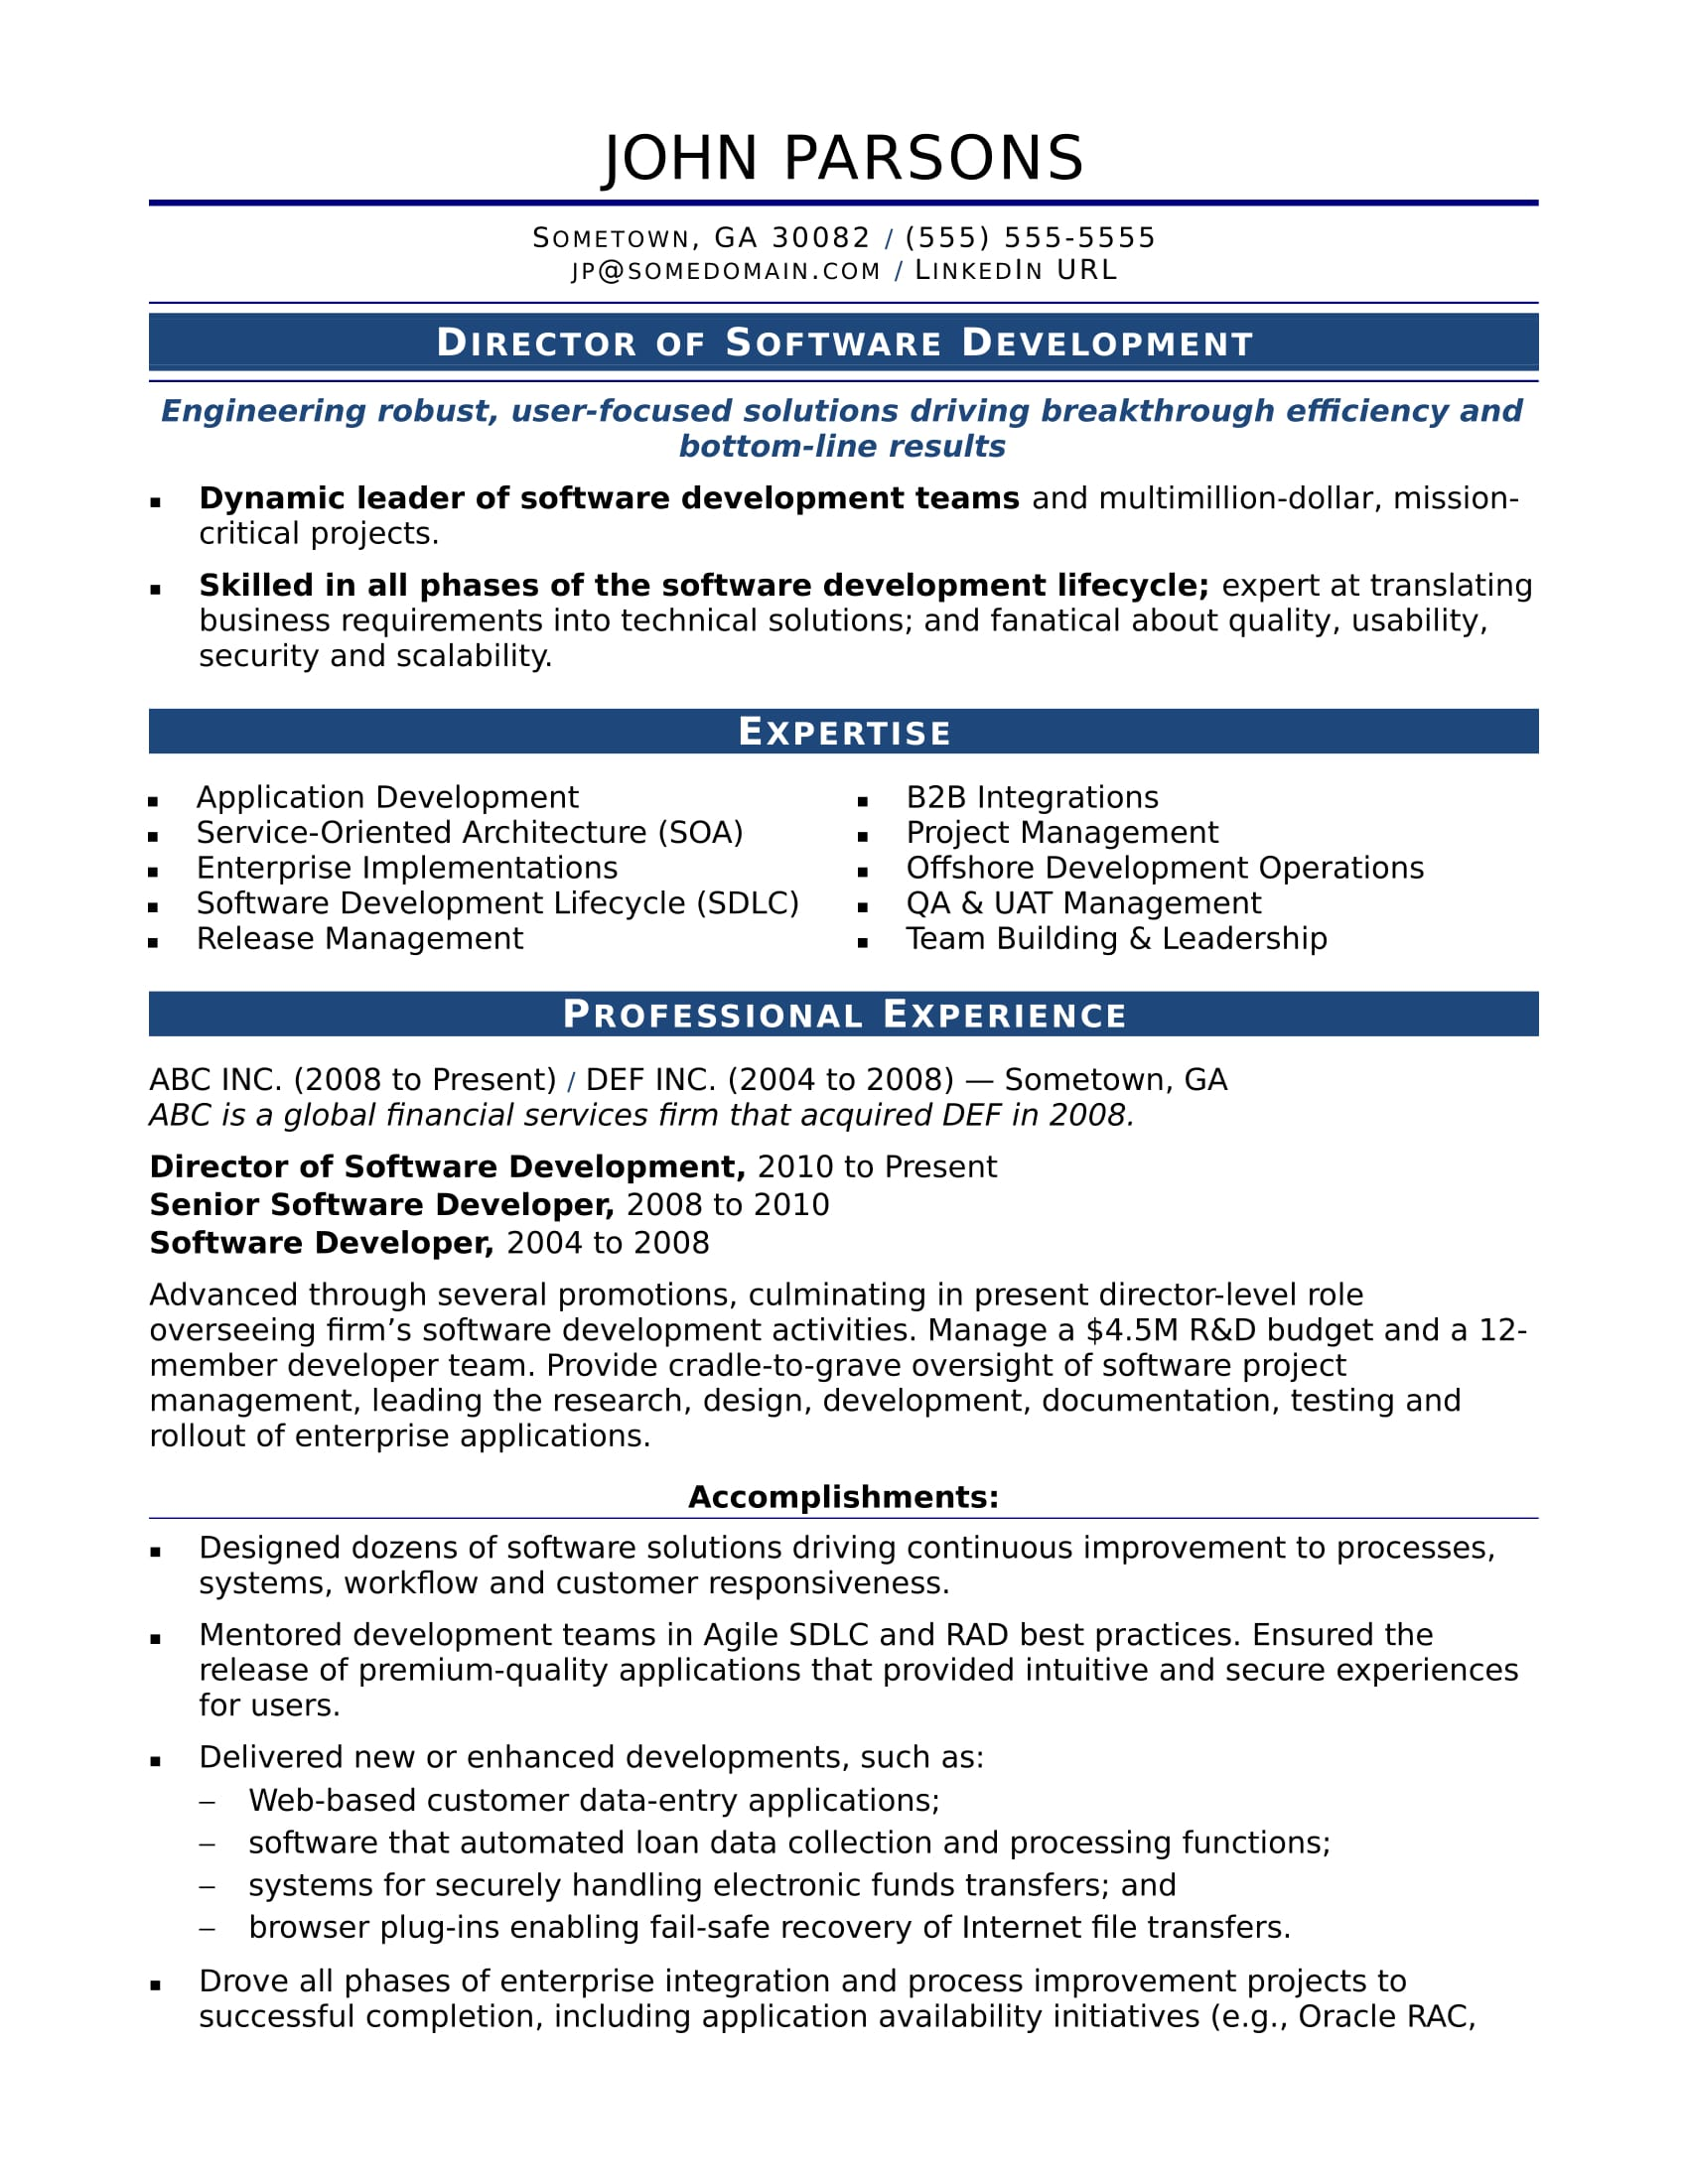 resume Latest Format Of Resume For Experienced sample resume for an experienced it developer monster com developer